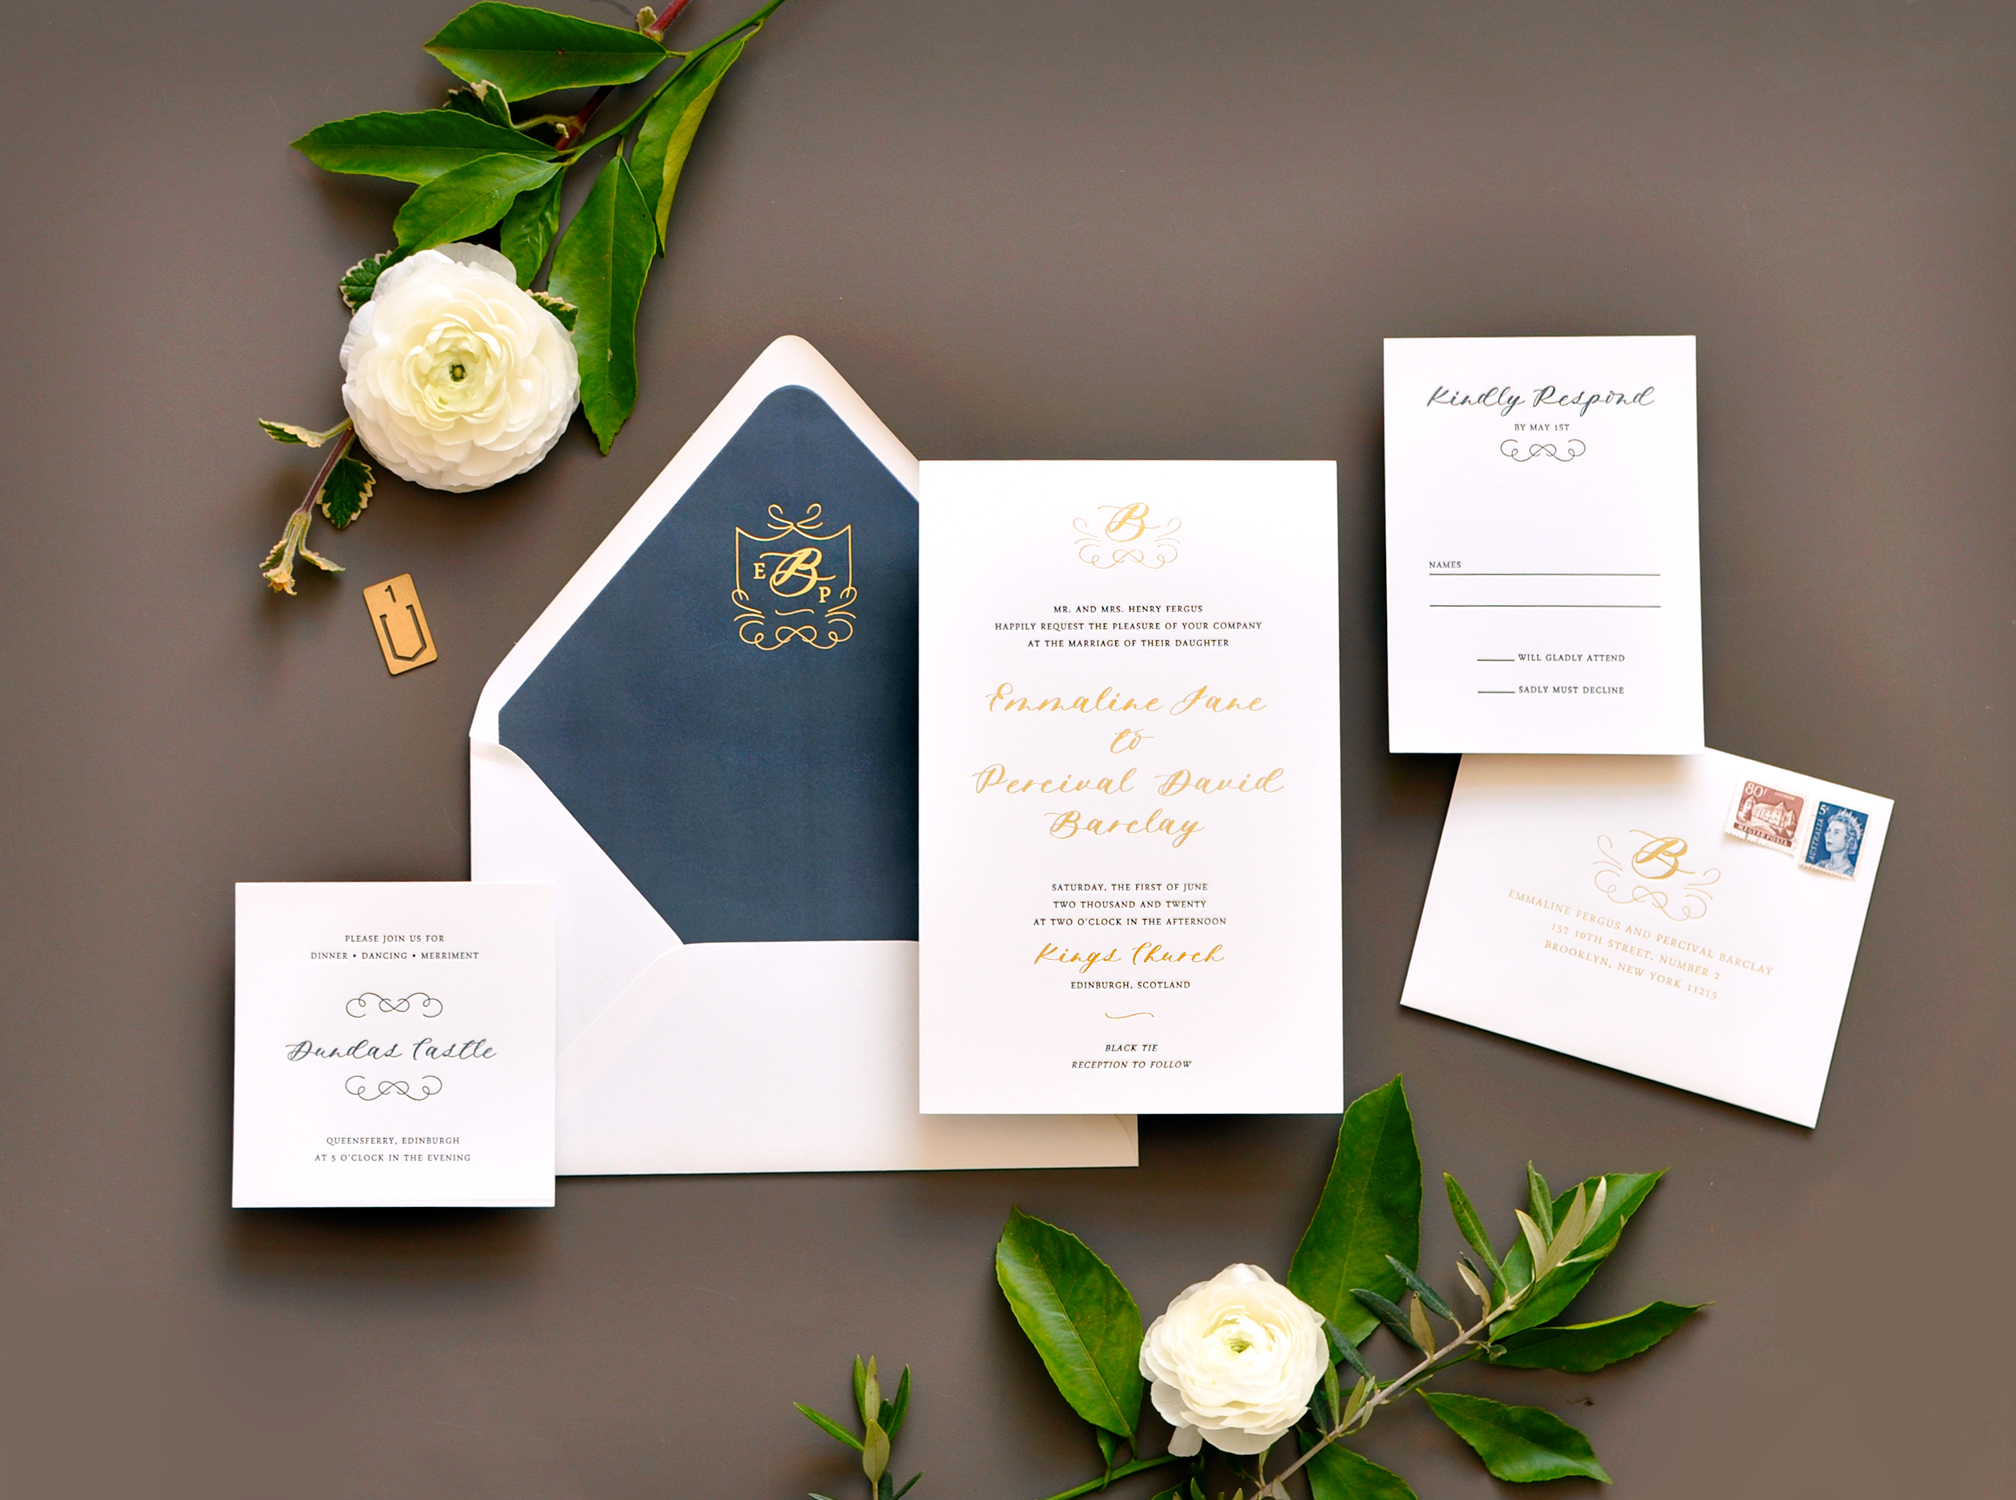 Gold foil and navy letterpress are the perfect pairing on this formal wedding invitation embellished with a flourished monogram and personalized envelope liner.